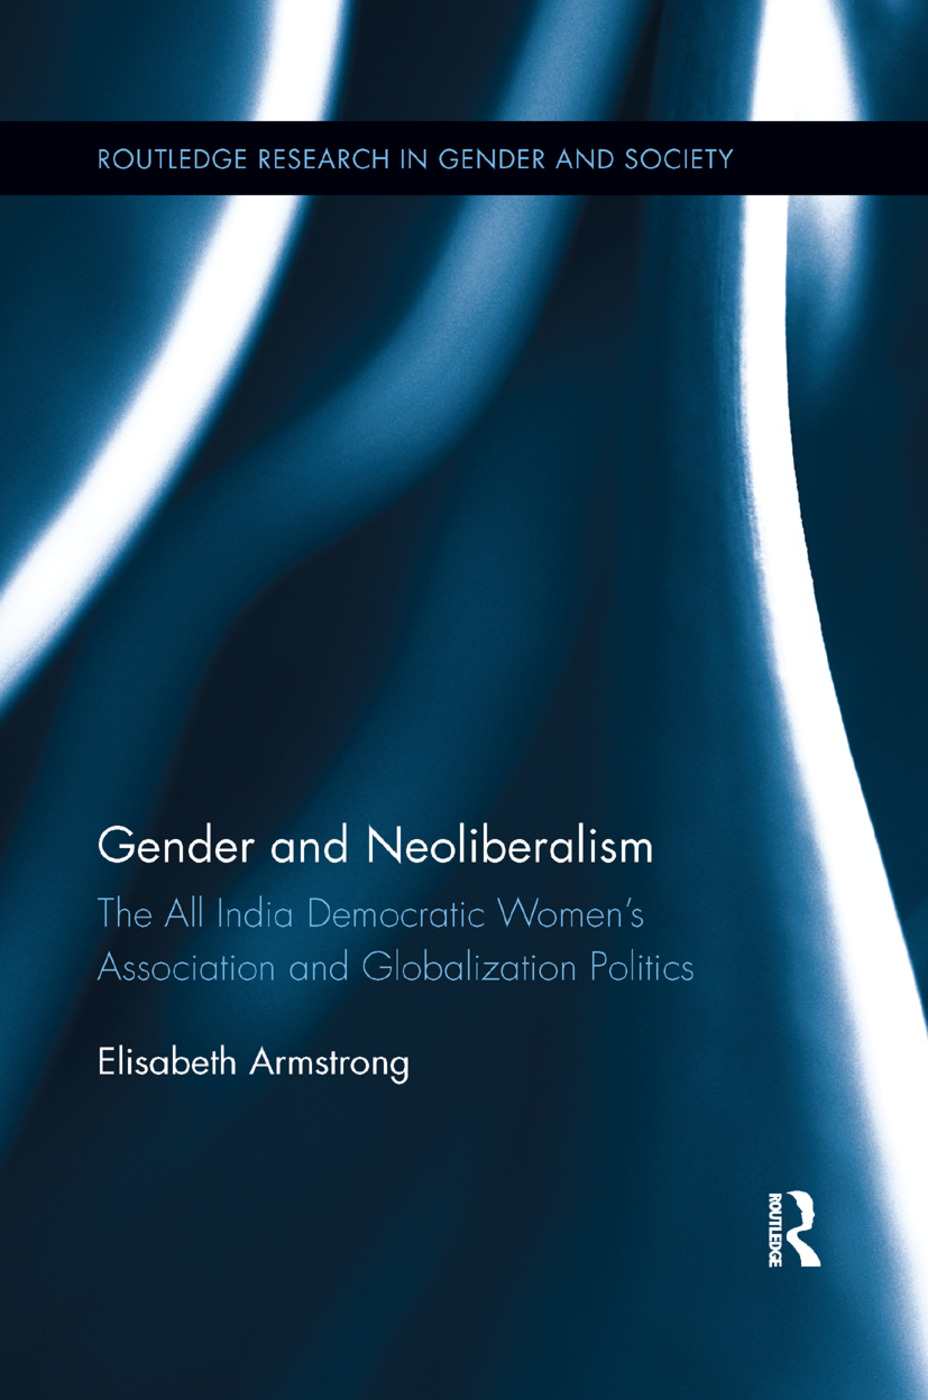 Gender and Neoliberalism: The All India Democratic Women's Association and Globalization Politics book cover